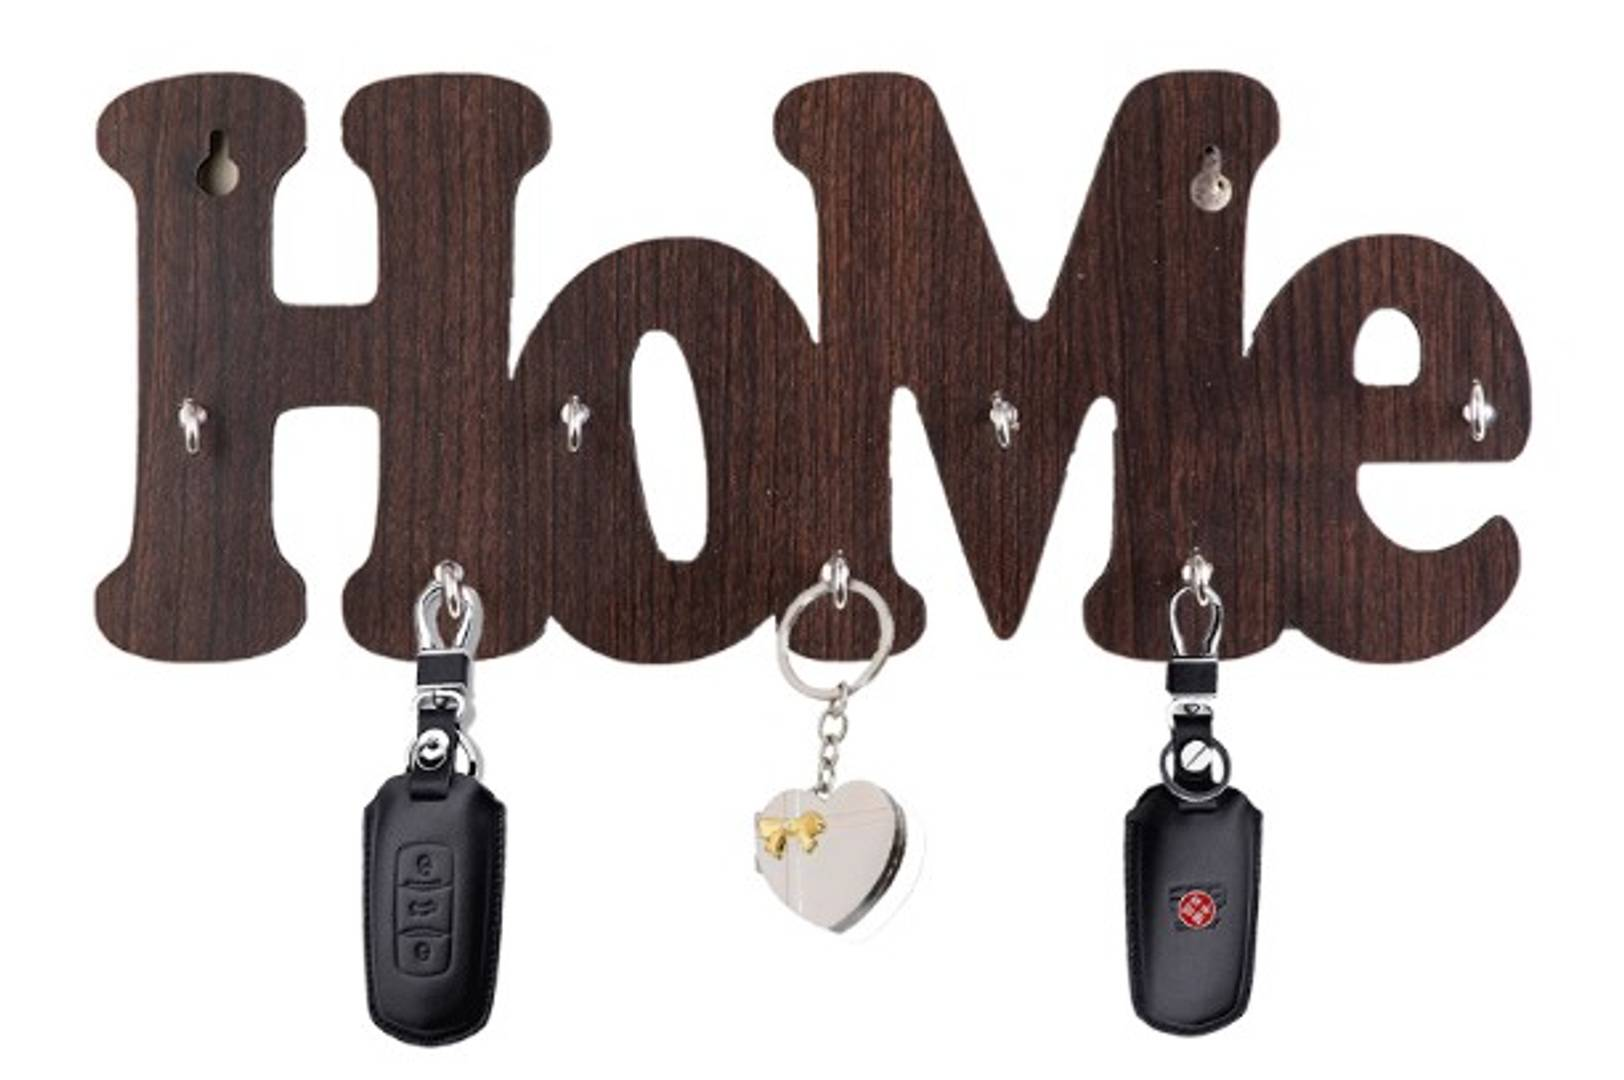 MSK Key Holder - Home Shaped - Coffee Colour - 7 hooks